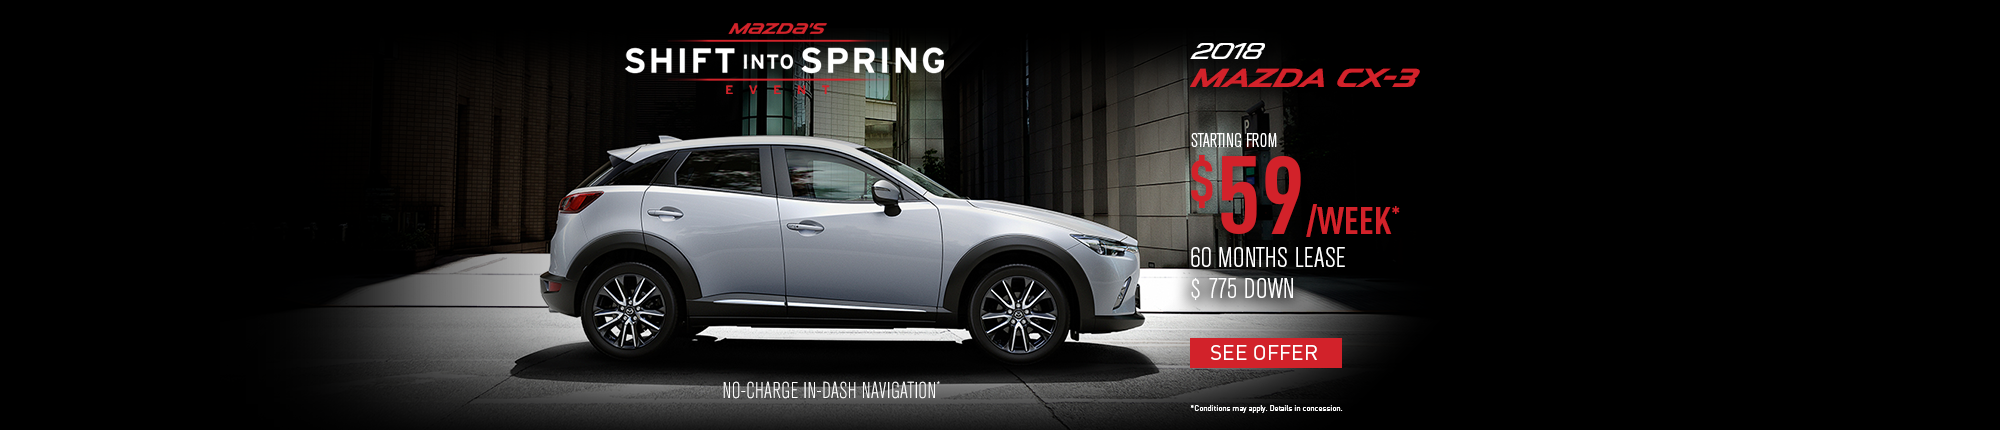 Shift into Spring - CX-3